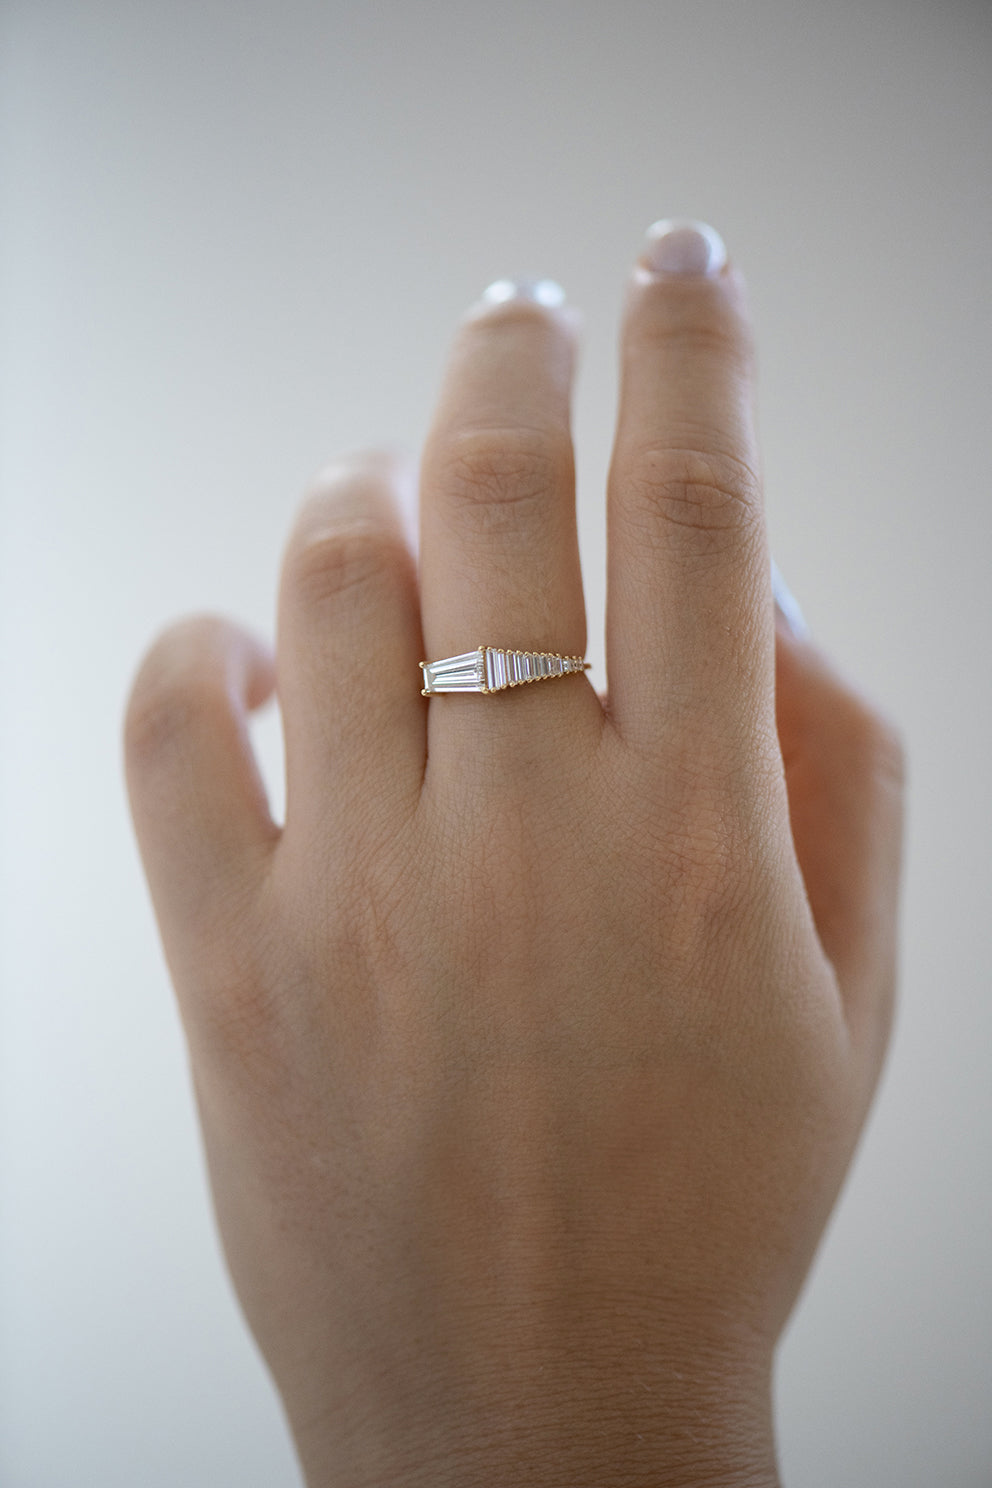 Trapeze Diamond Engagement Ring - OOAK Ring on Hand Front View